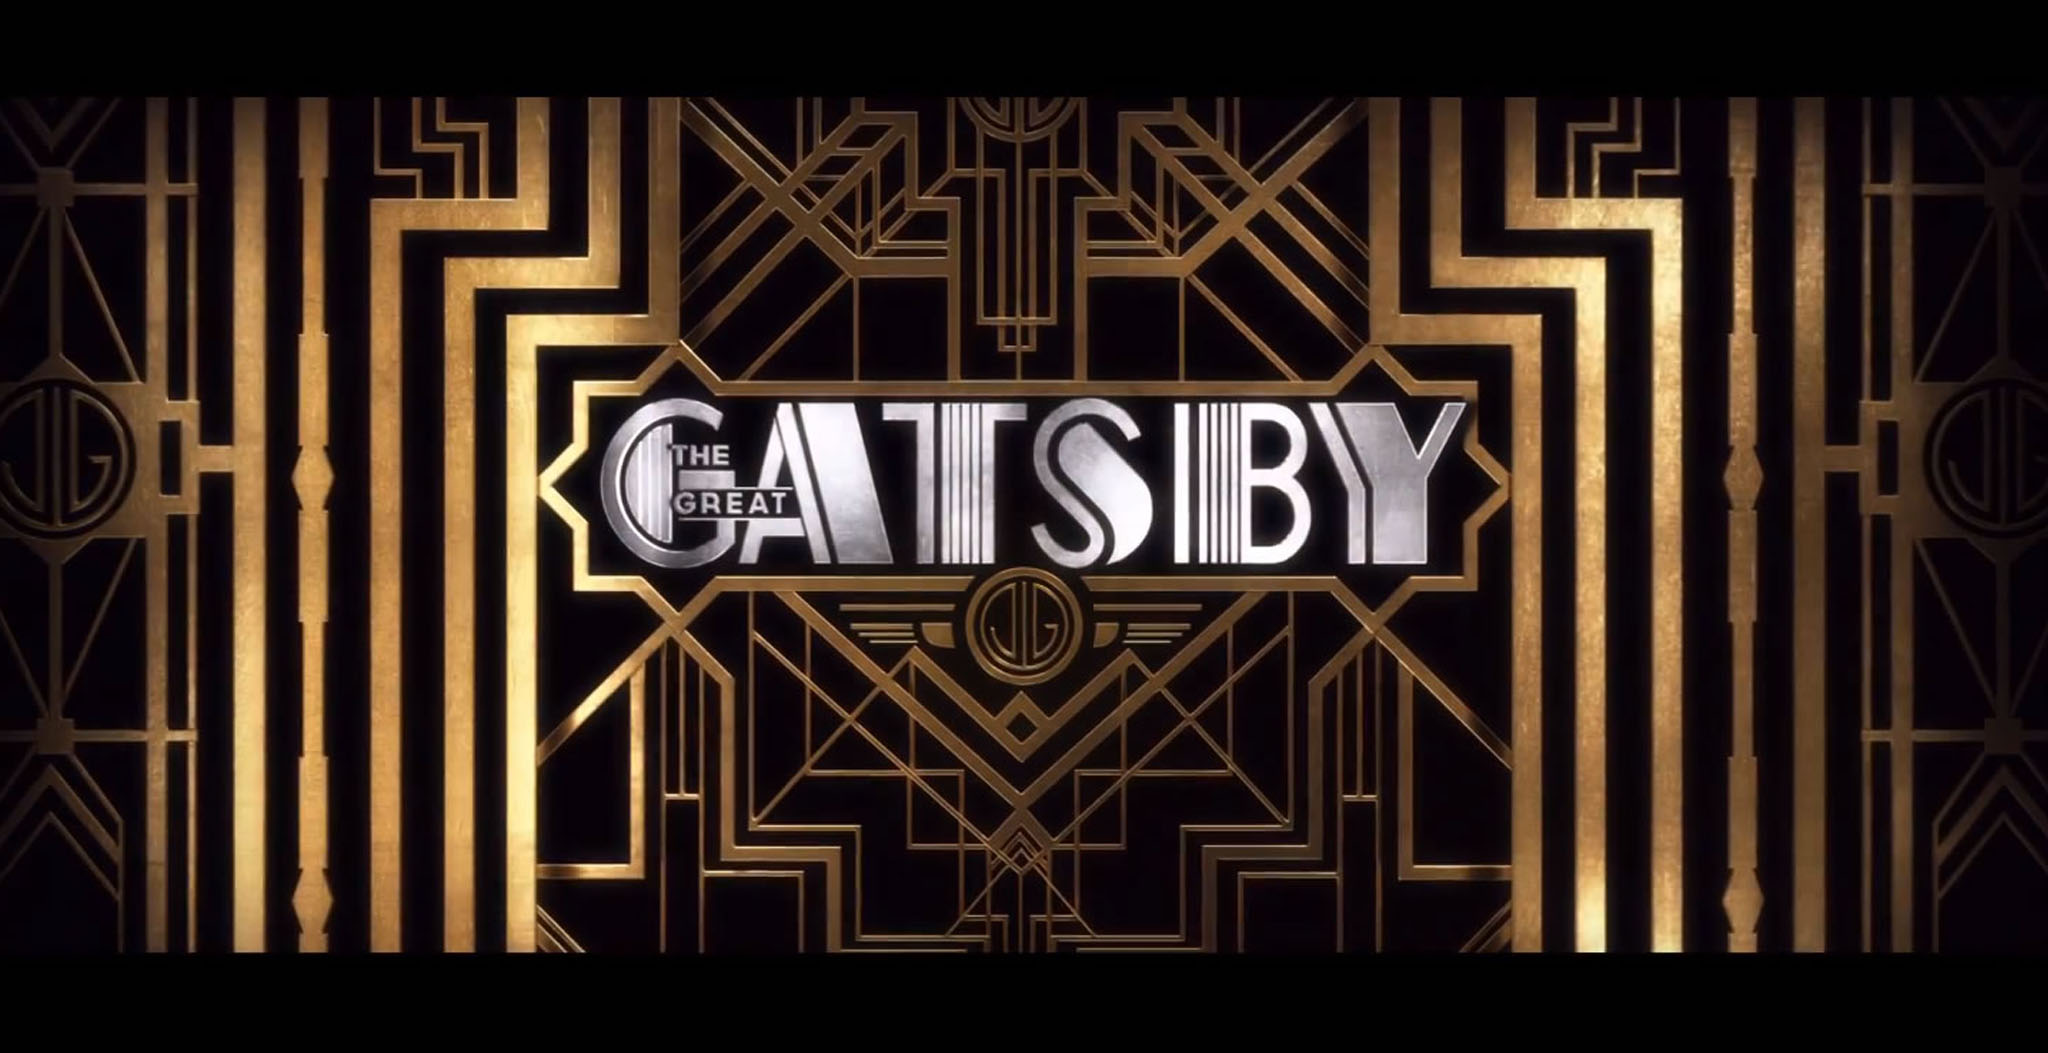 Lettrage art deco Gatsby